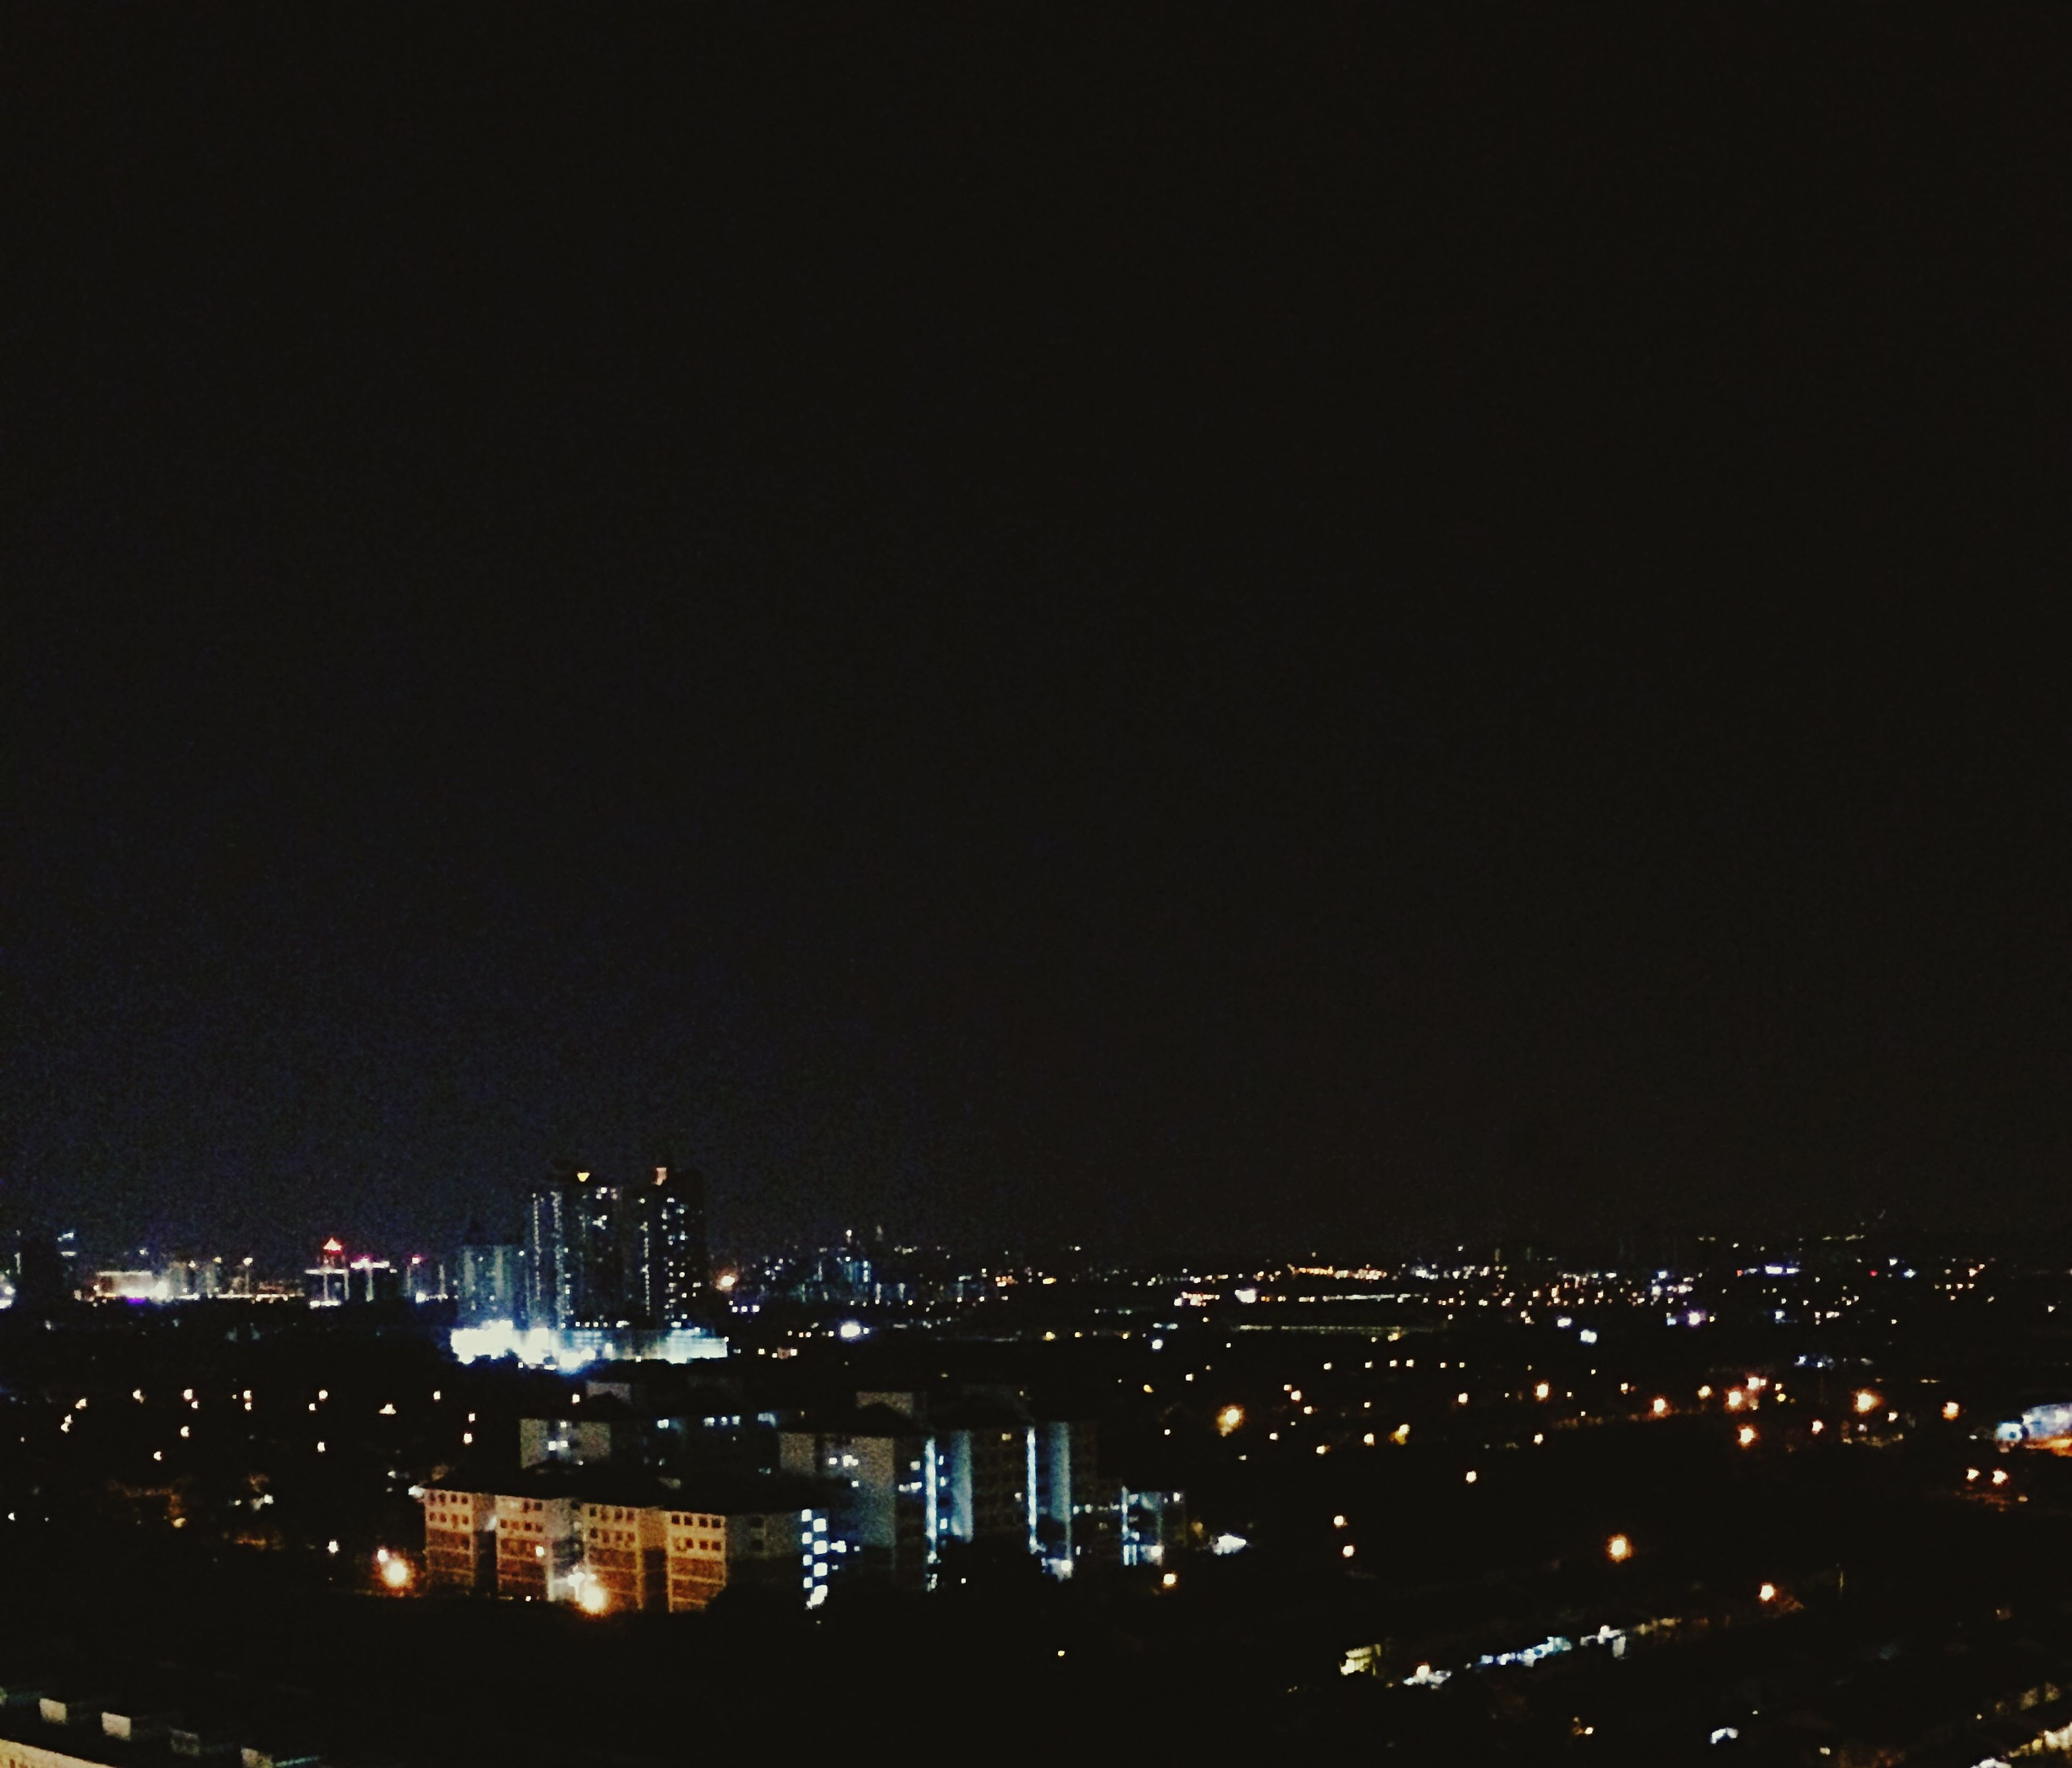 night, illuminated, city, cityscape, building exterior, architecture, built structure, copy space, dark, clear sky, sky, city life, river, high angle view, outdoors, light, no people, light - natural phenomenon, residential building, crowded